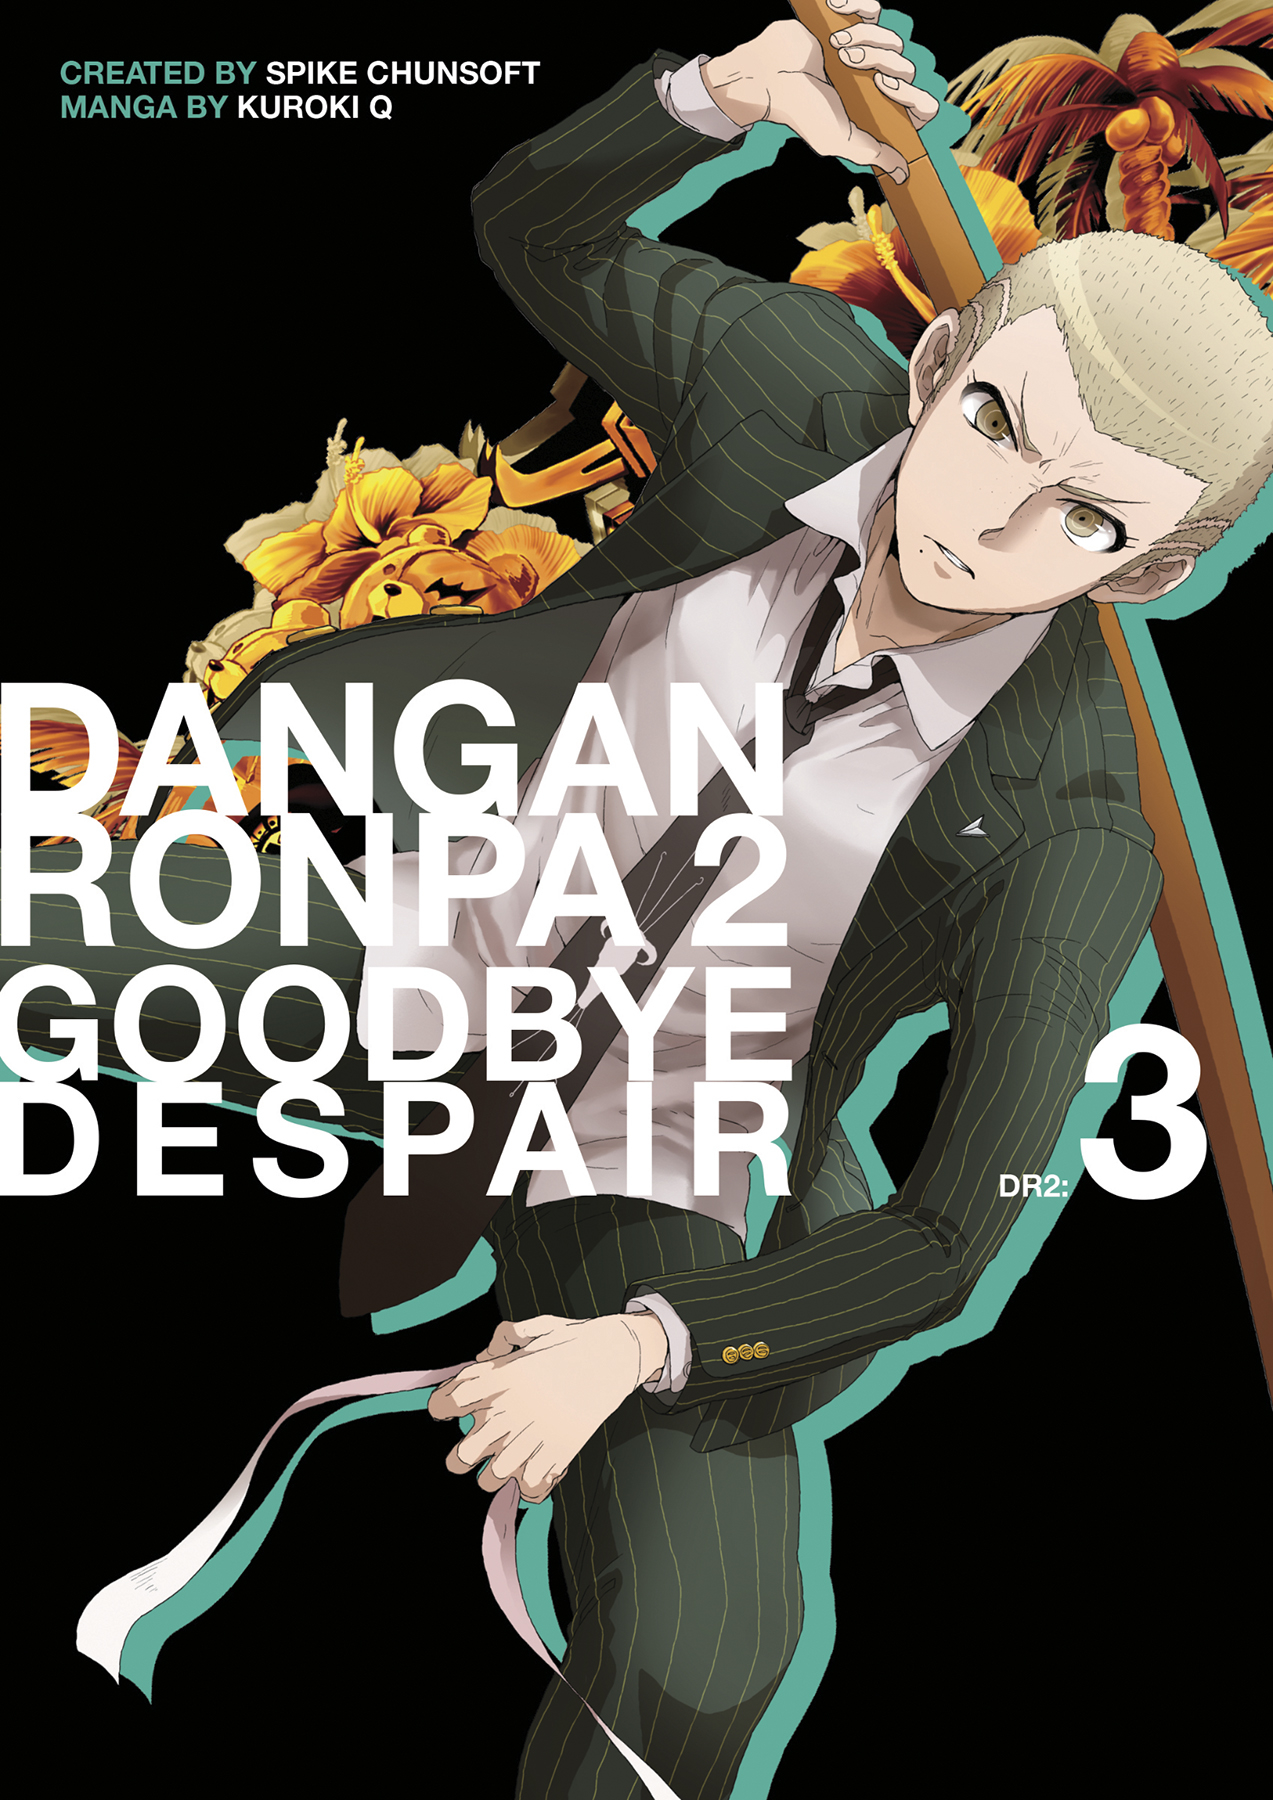 DANGANRONPA 2 GOODBYE DESPAIR TP VOL 03